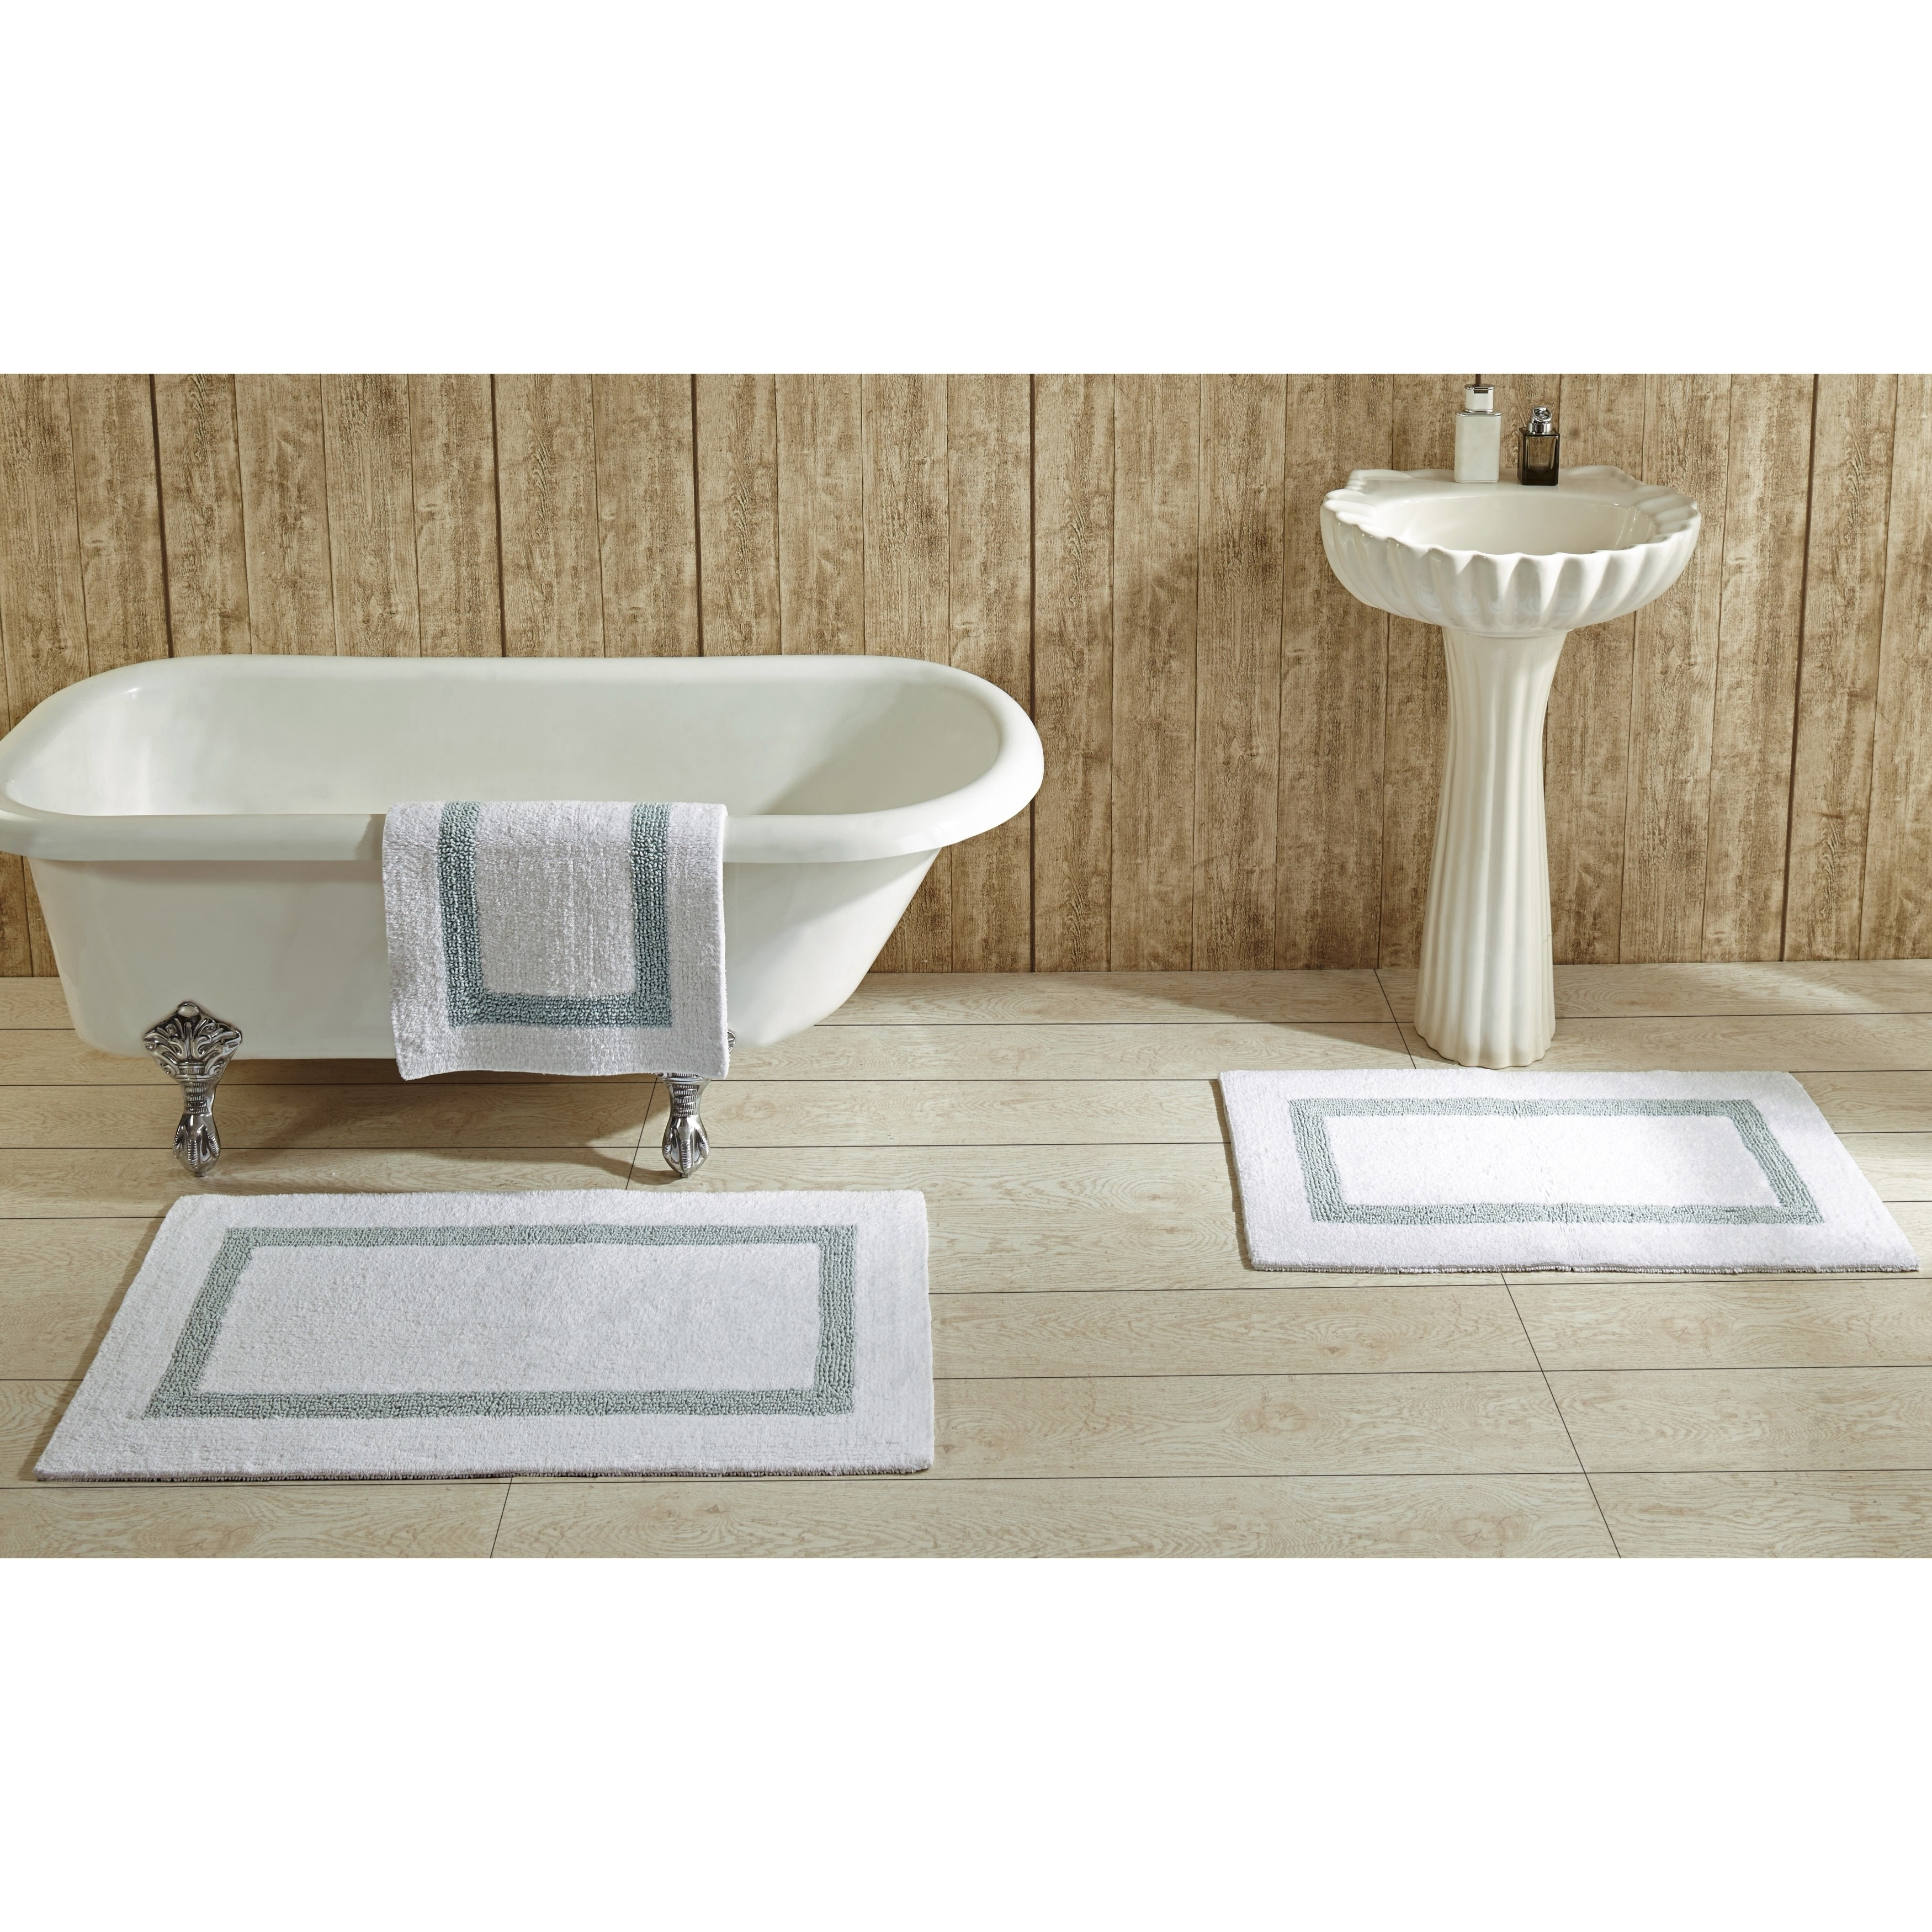 Hotel Collection Cotton Reversible Luxury Bath Rug by Bet...